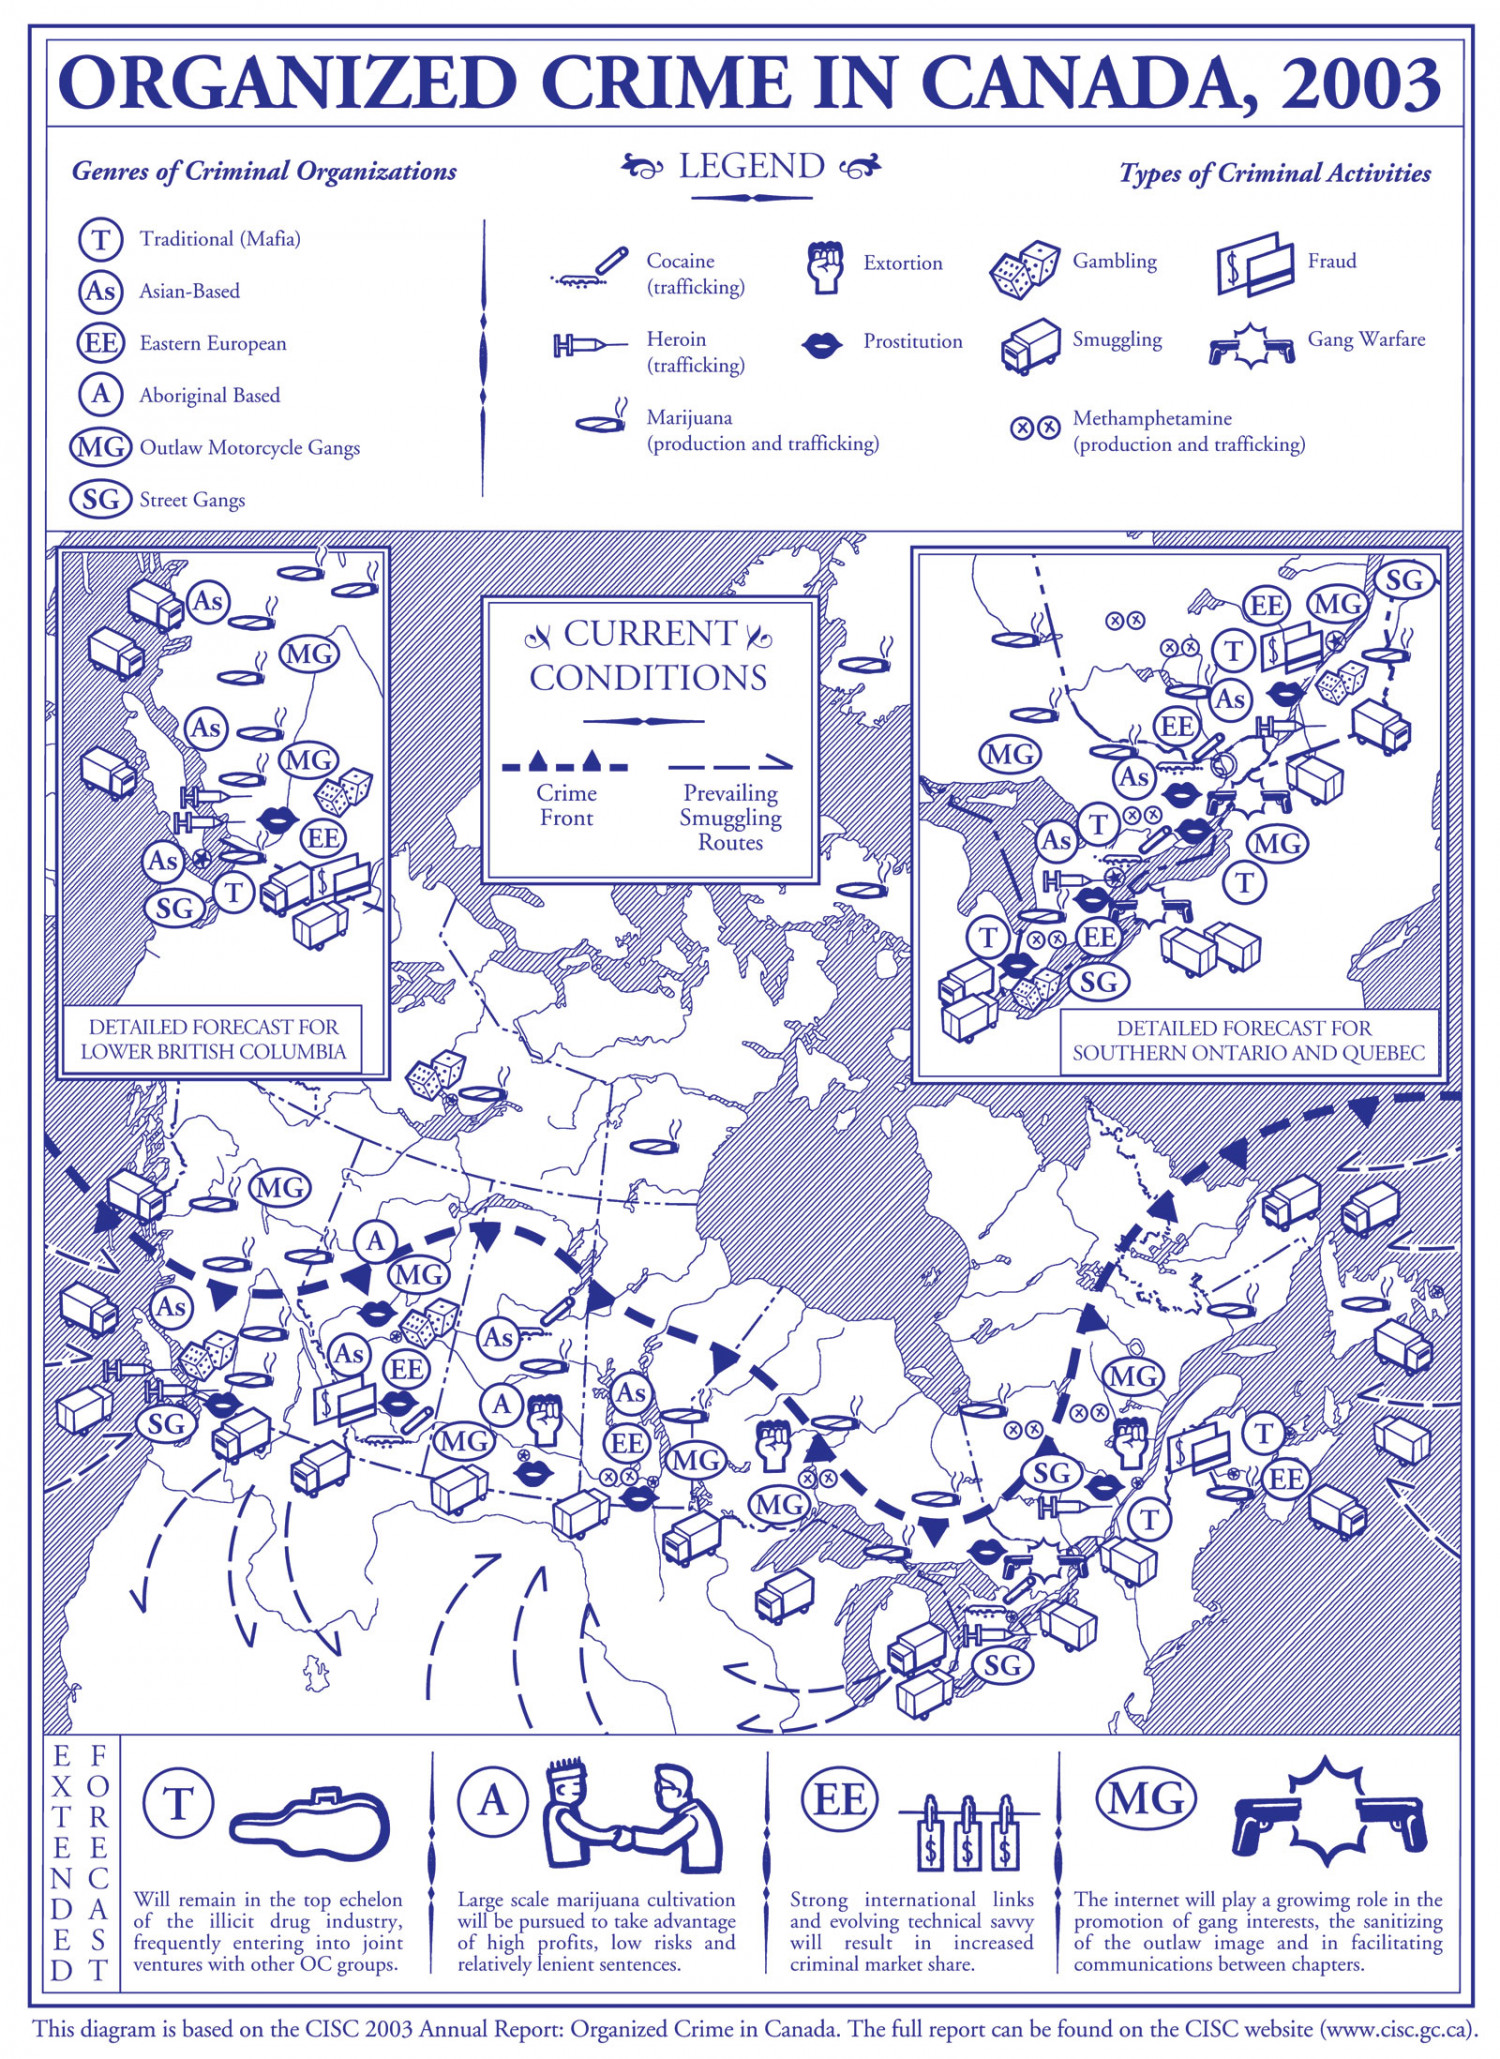 Organised Crime in Canada 2003 Infographic